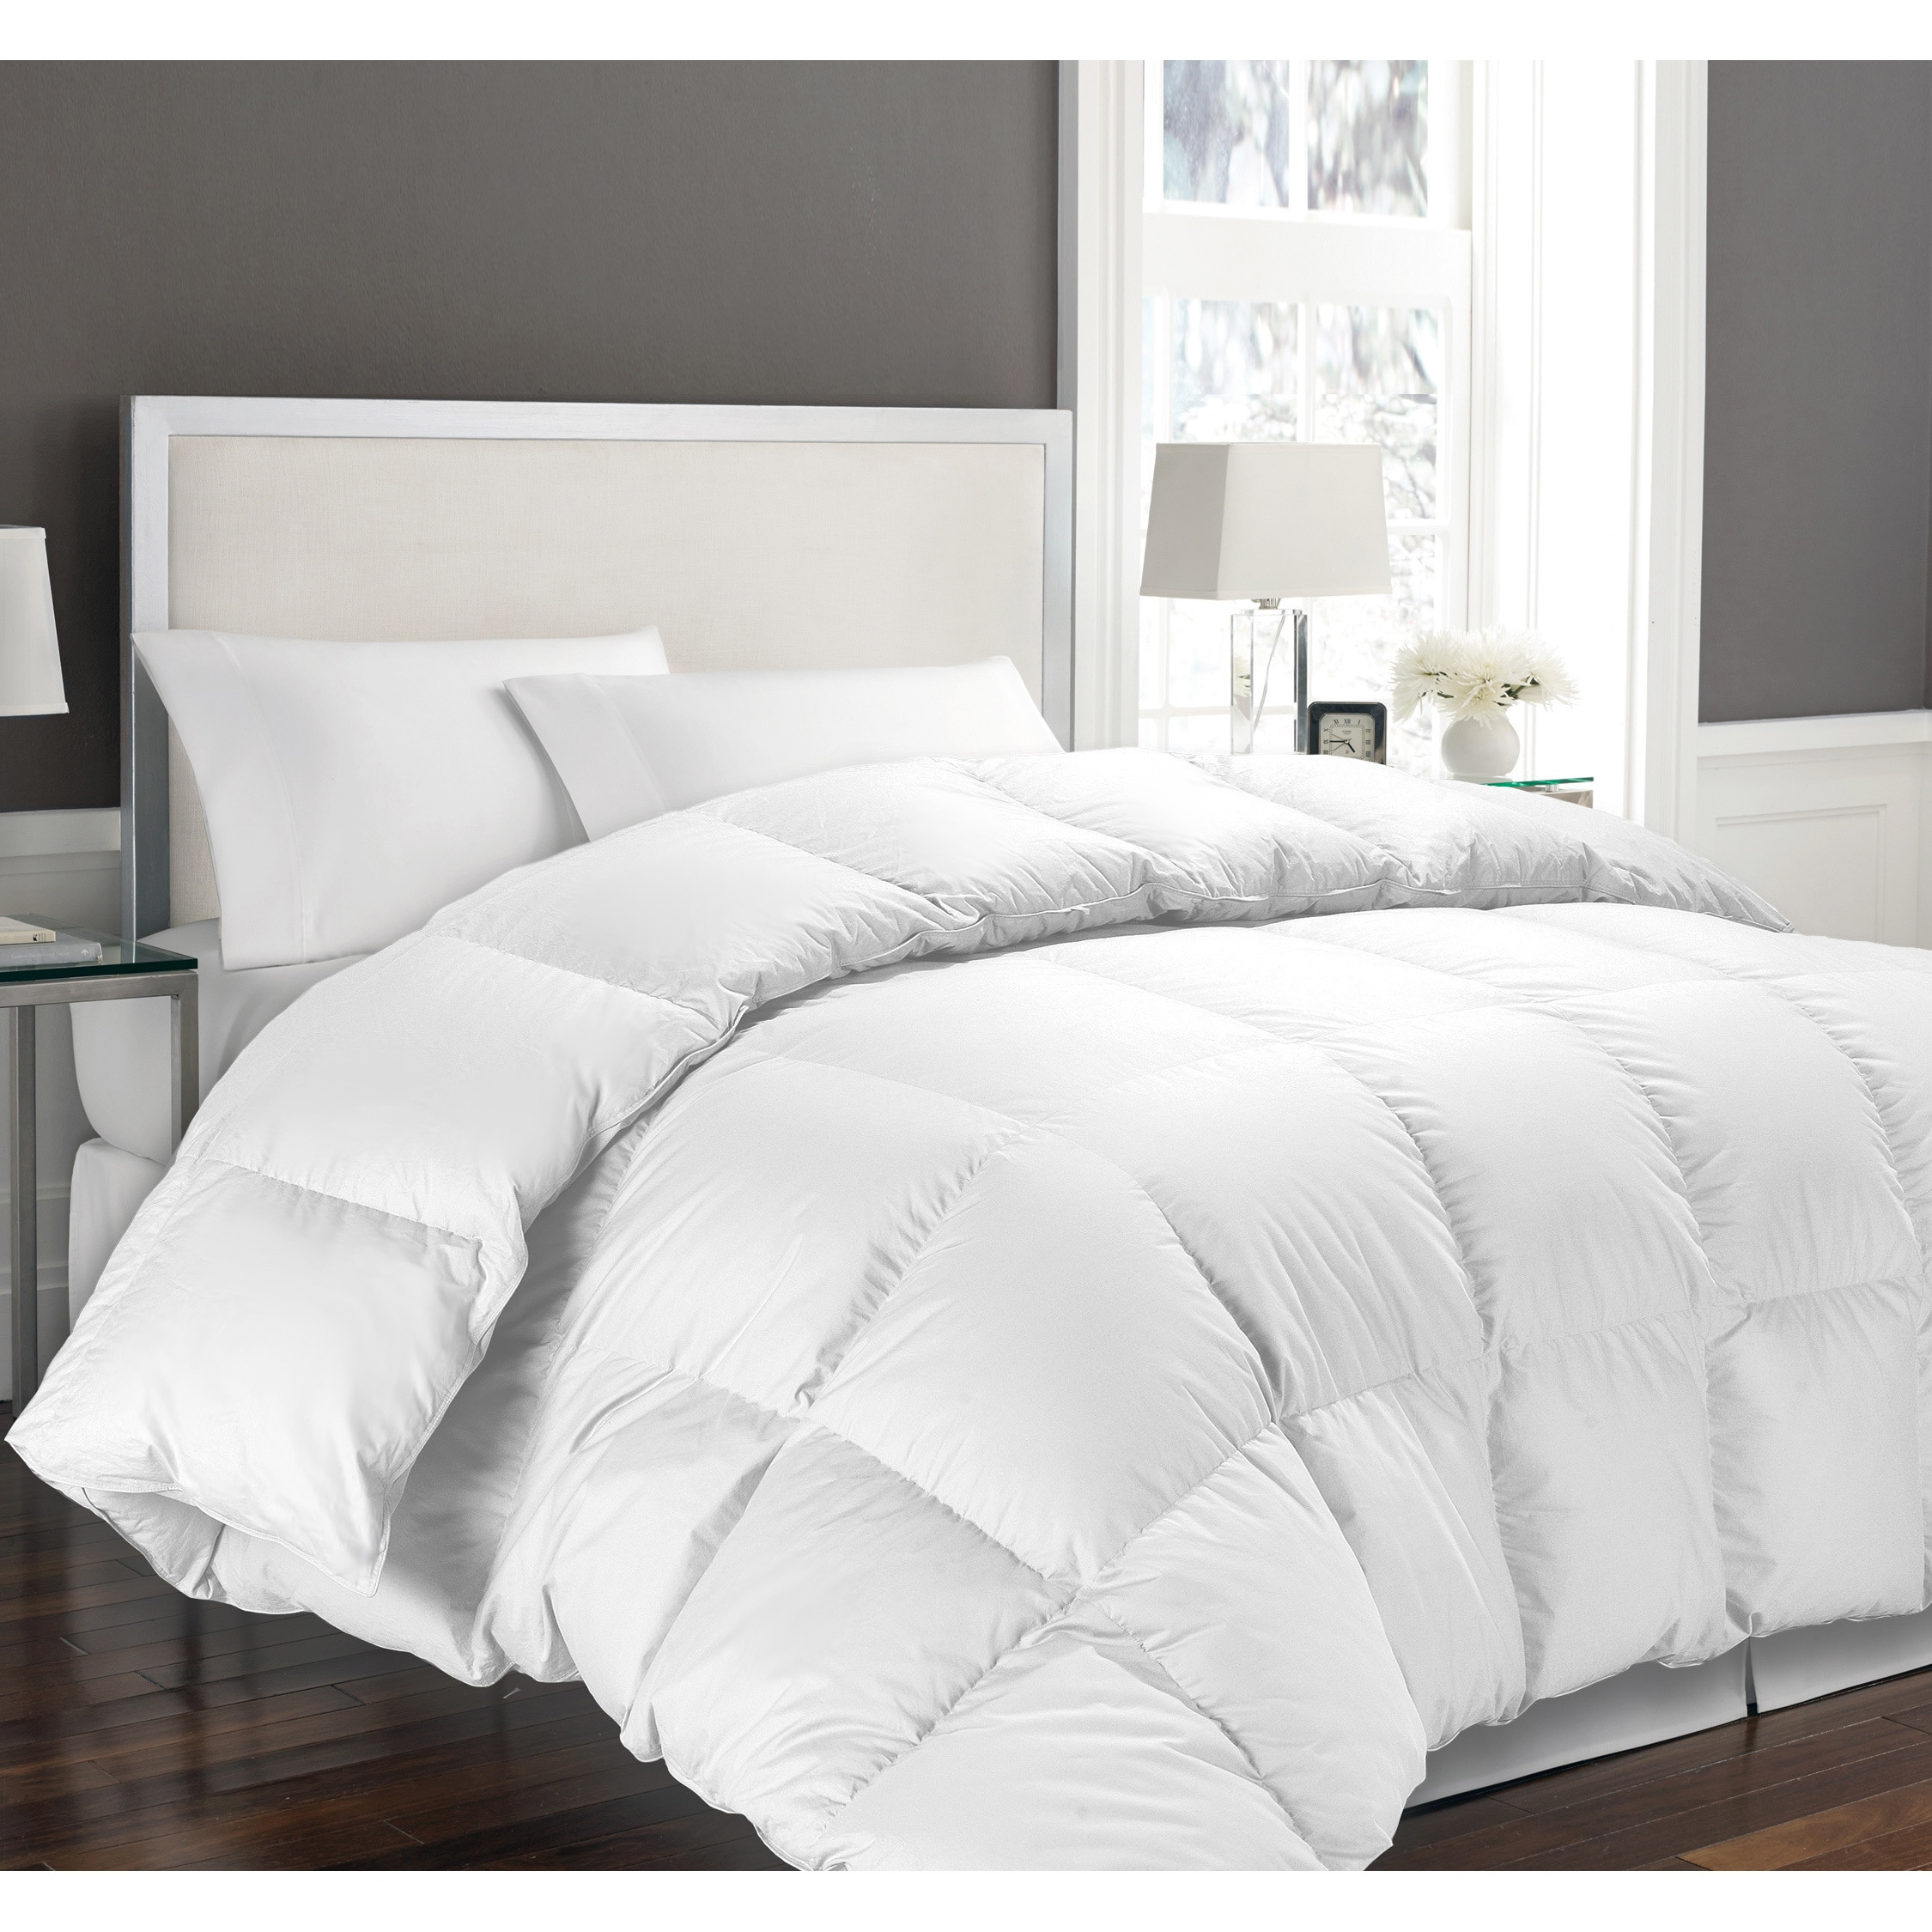 click aqua pc pale bed comforter p hotel expand set to collection